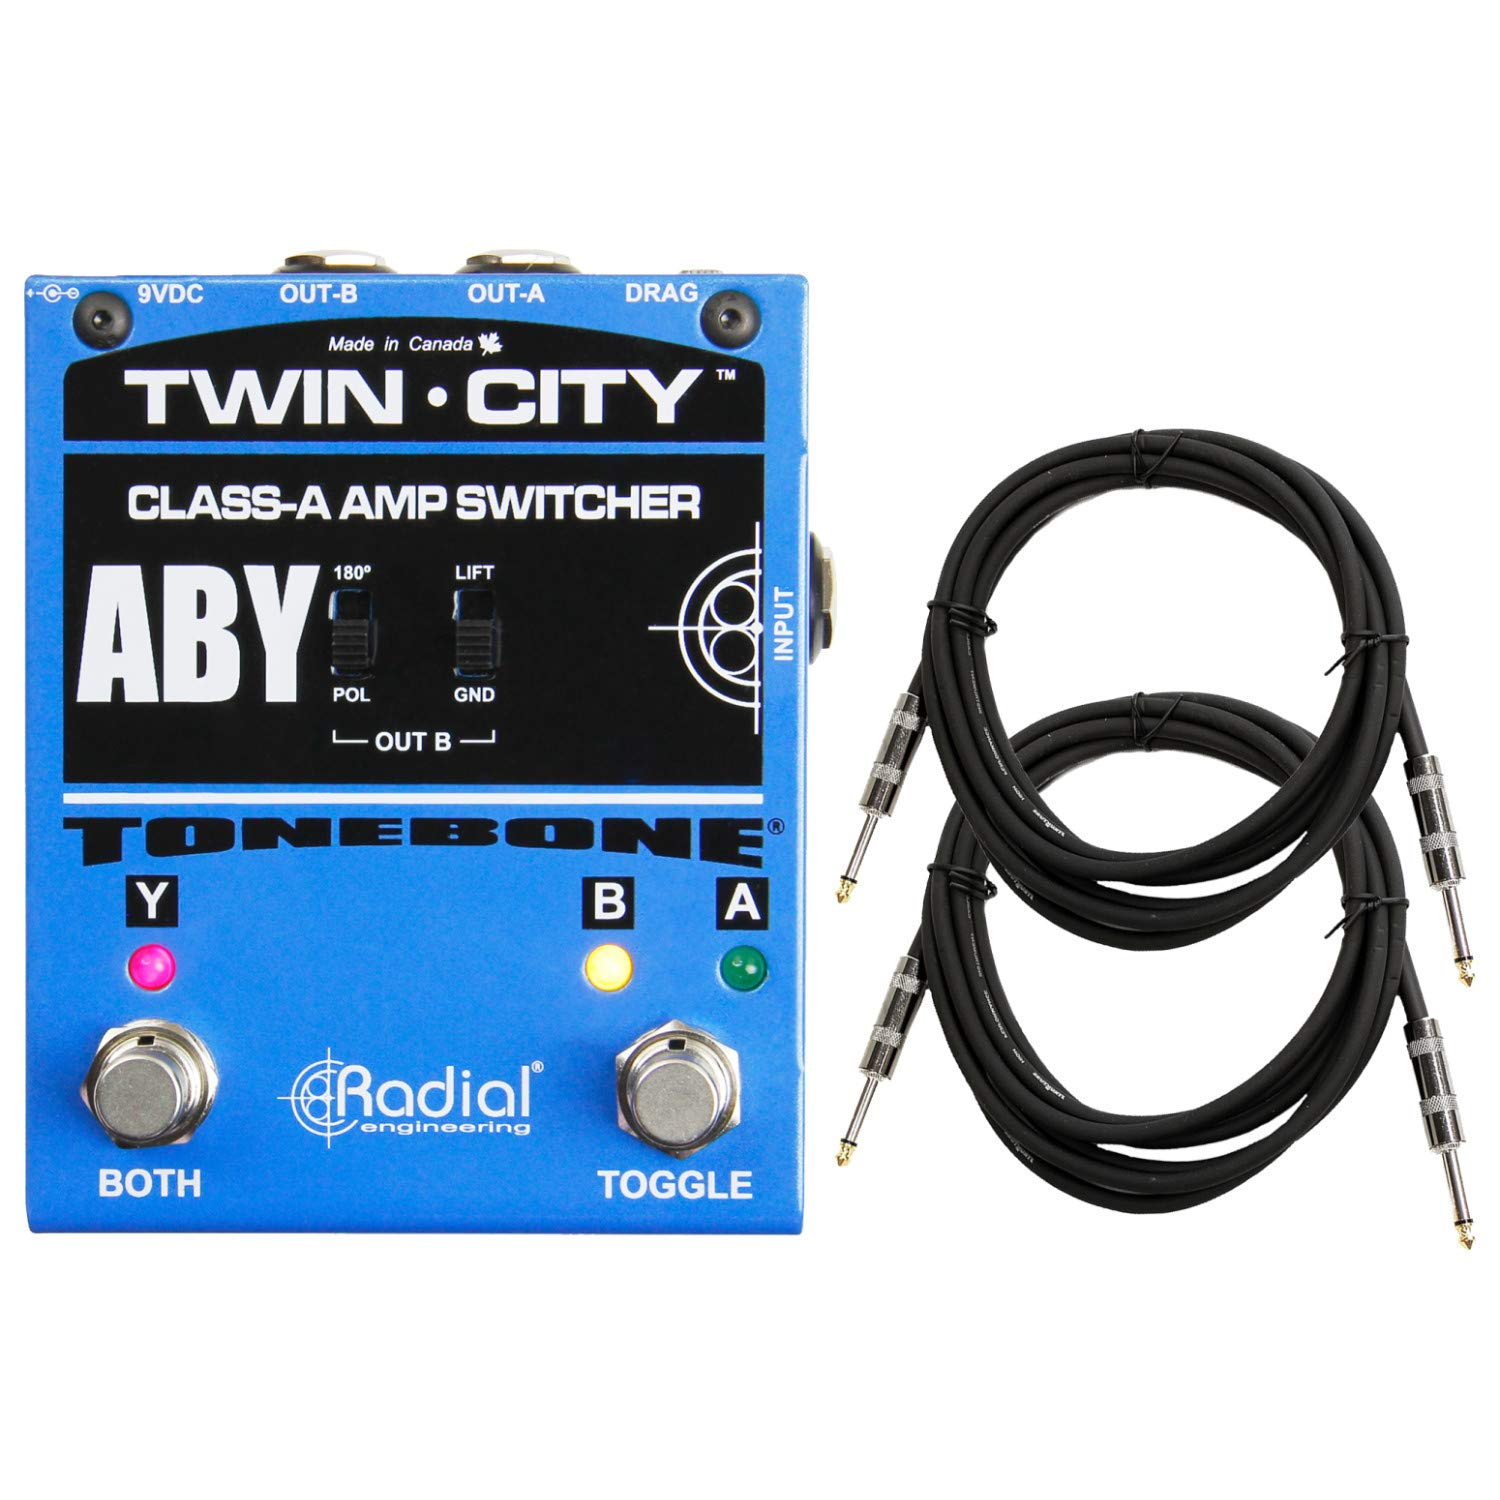 Radial Engineering Twin-City Bones ABY Amp Switcher/Selector w/ 2 Cables